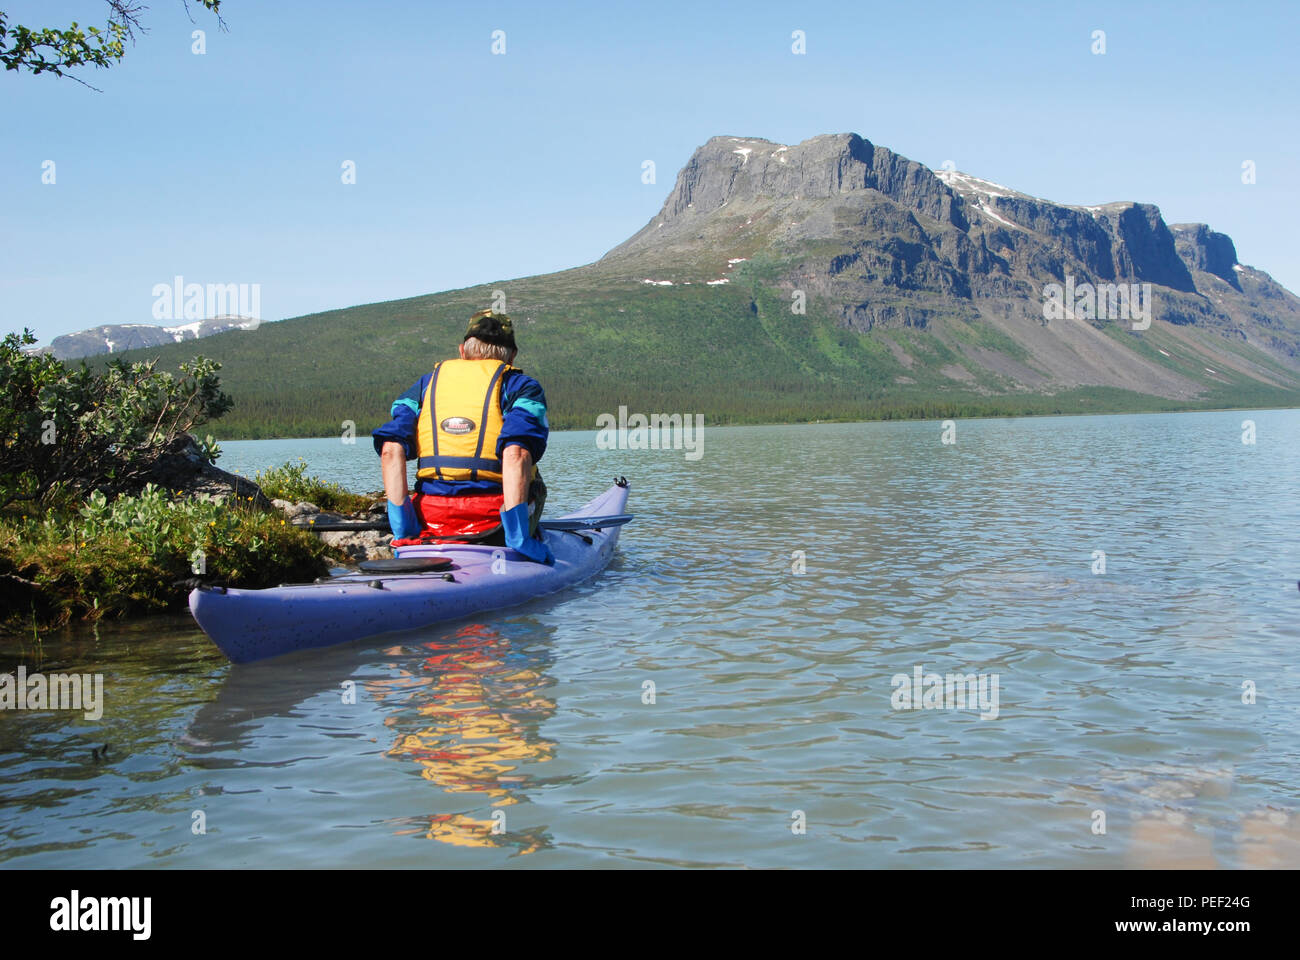 The beauty of Laponia Wilderness -Kayaking in Lake Laitaure - Stock Image